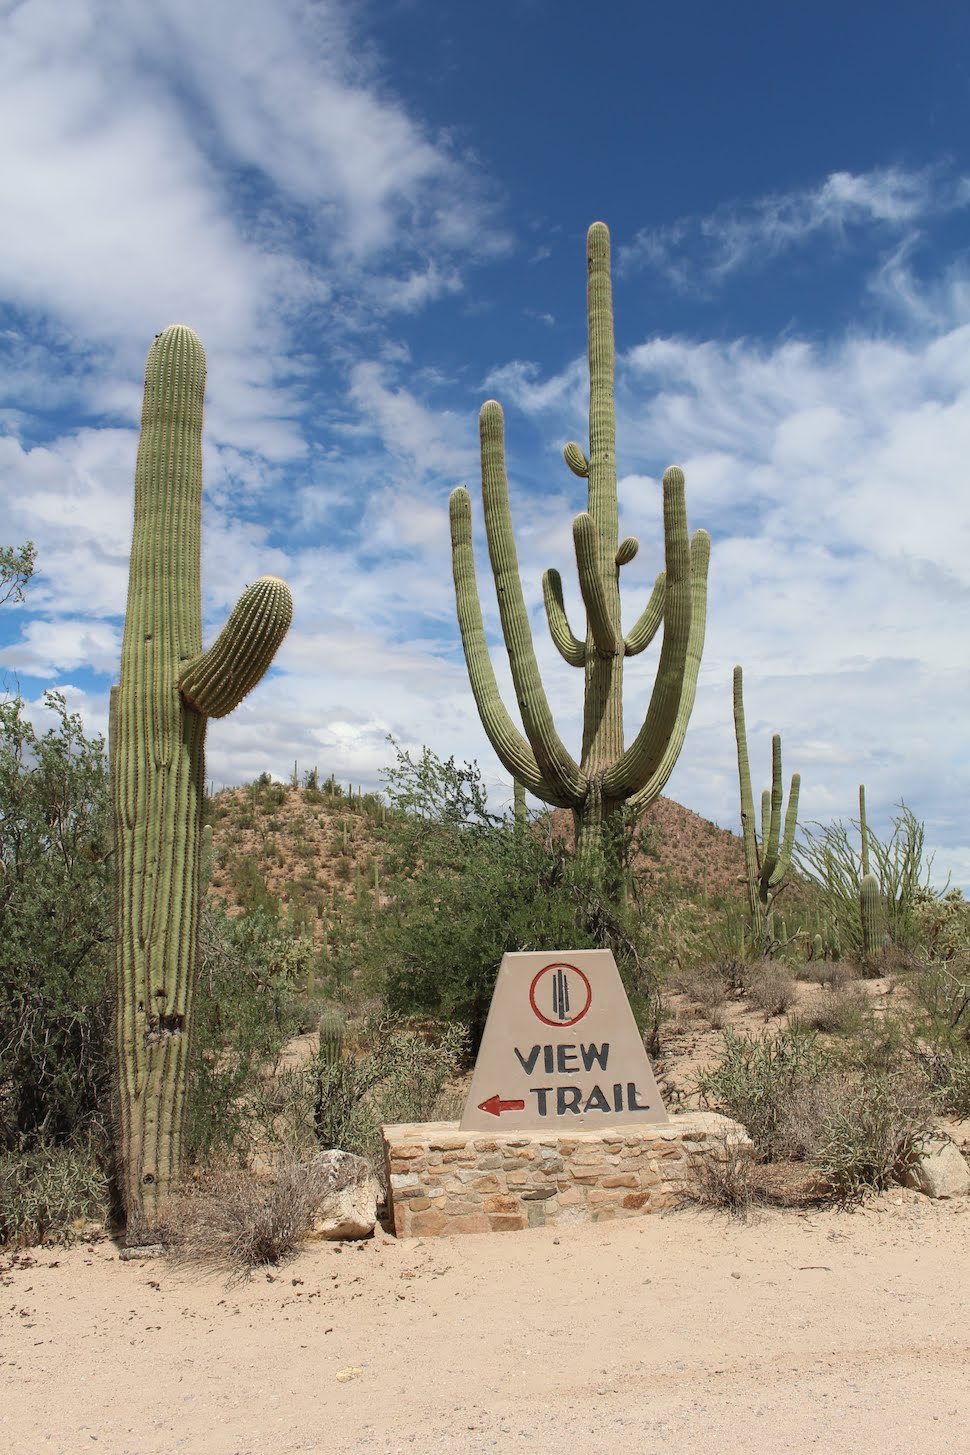 The trailhead sign for the Valley View overlook trail in Saguaro National Park